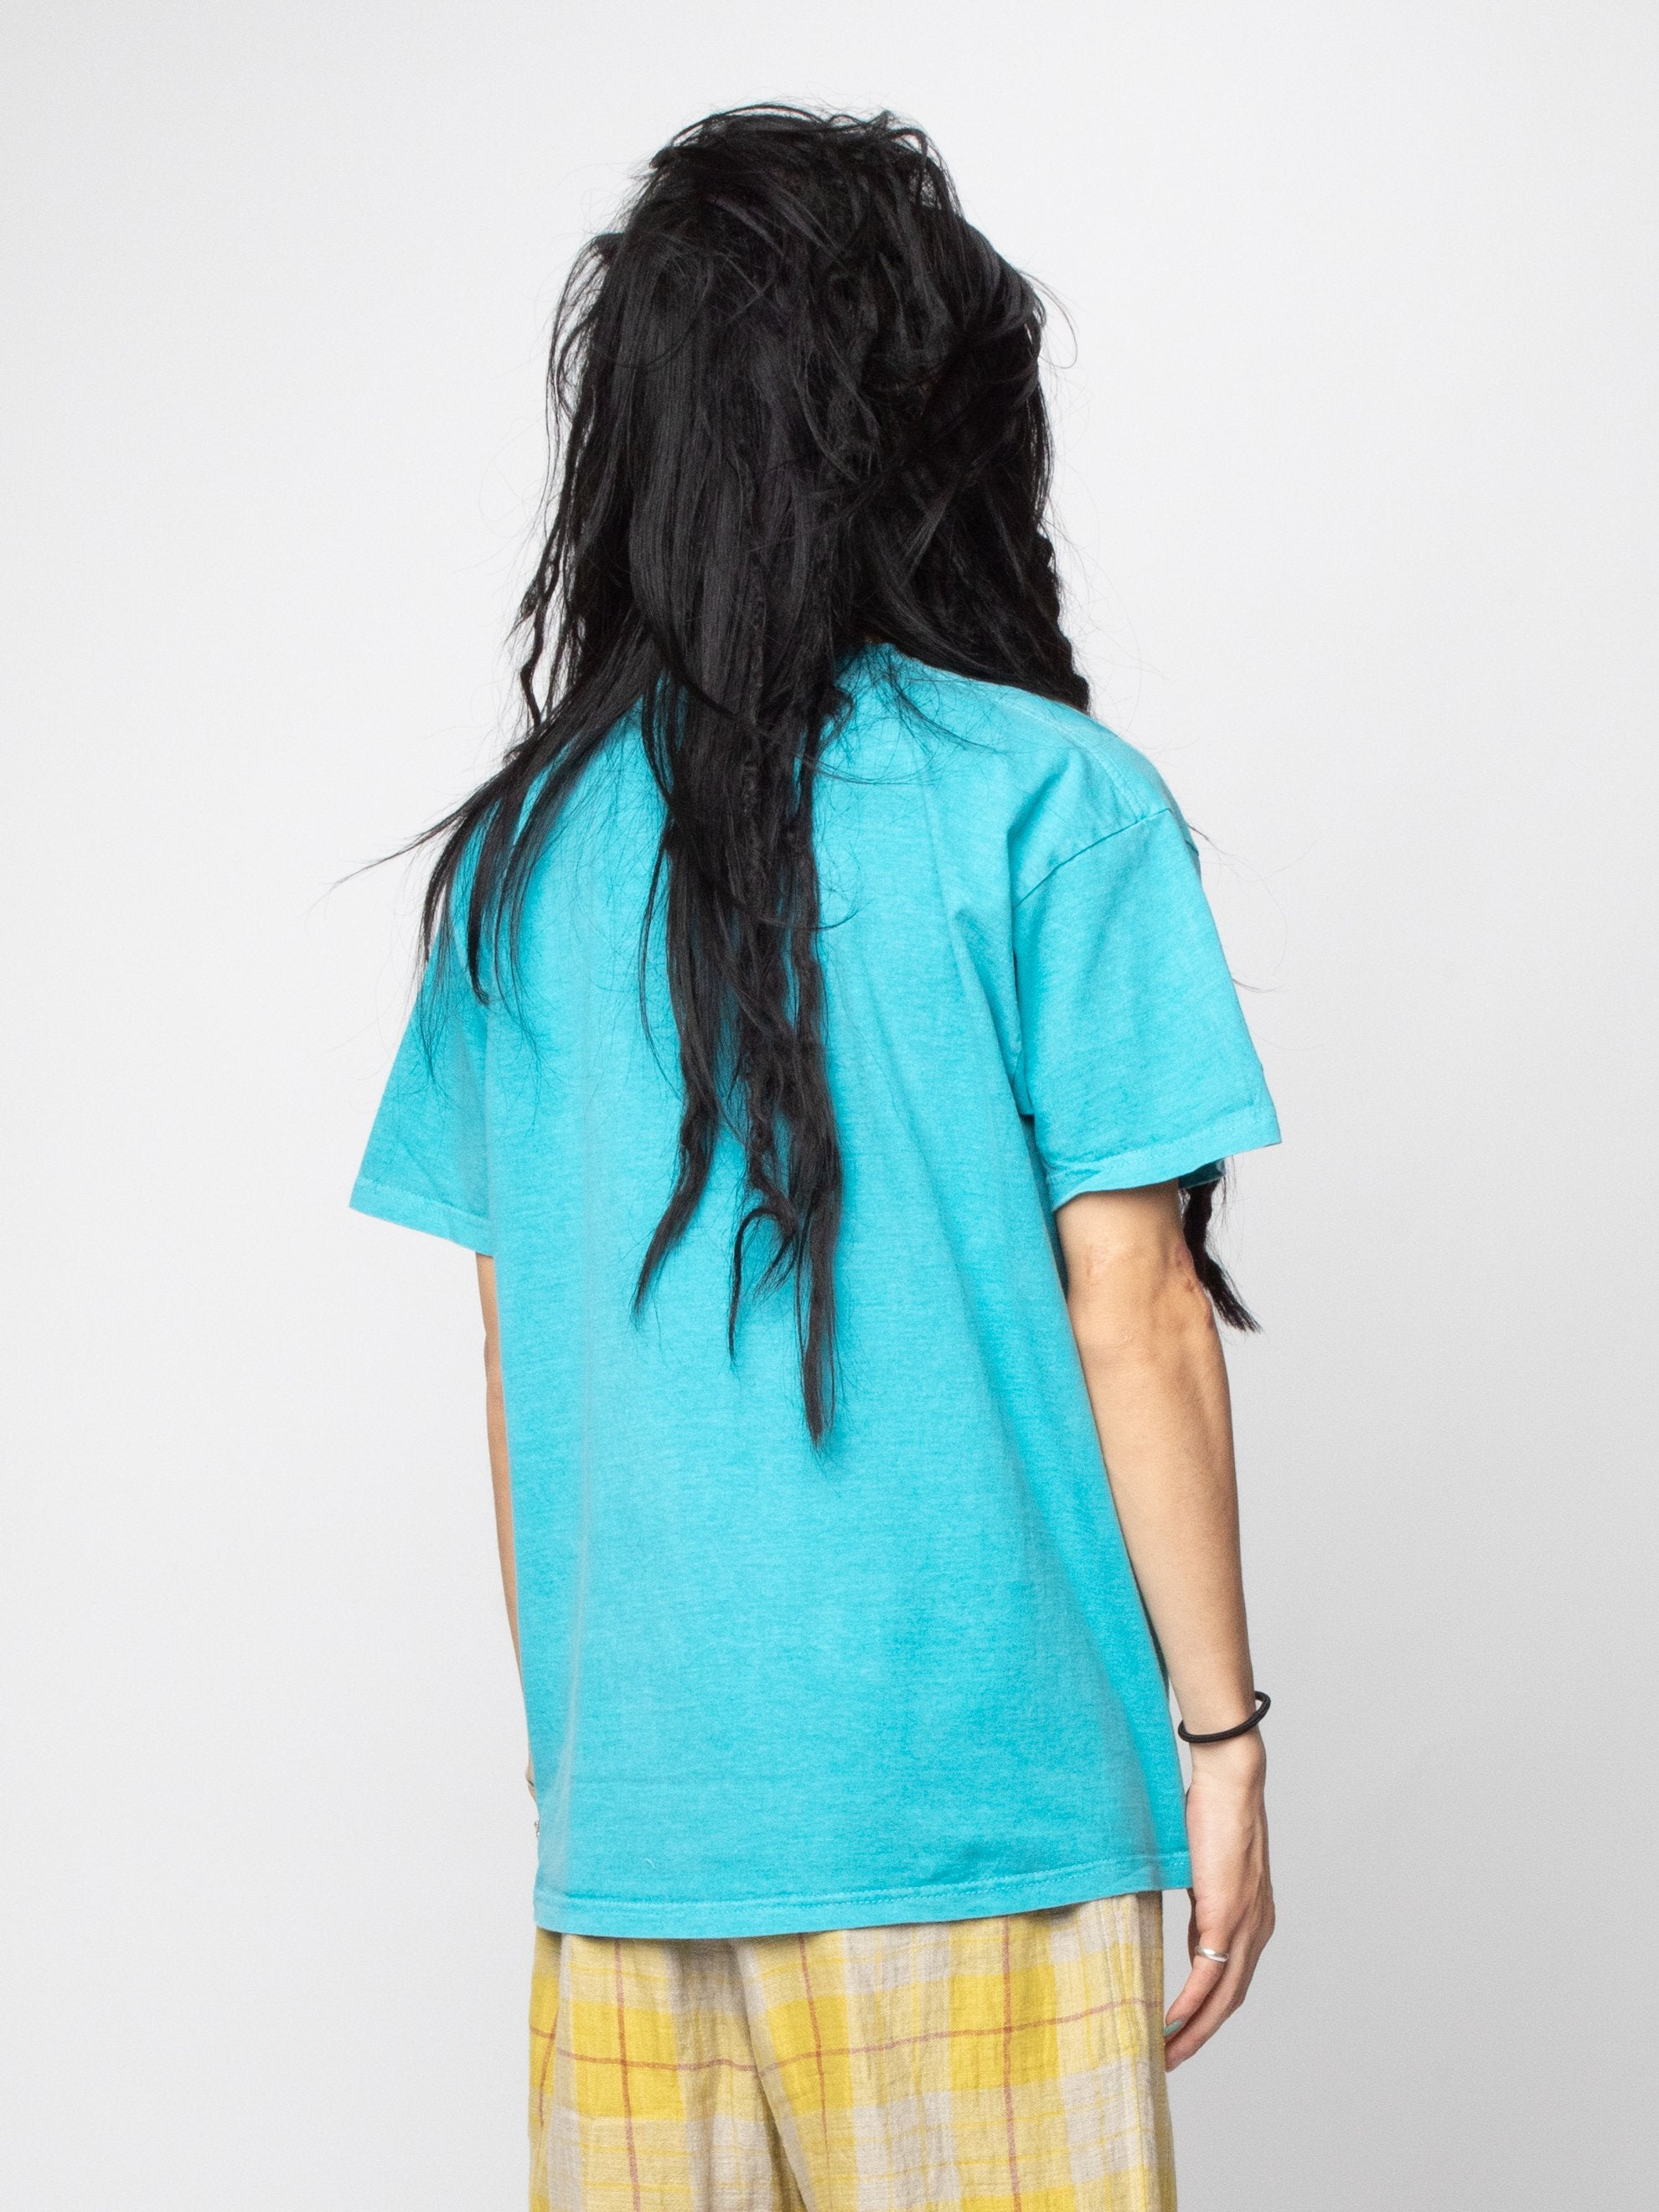 Turquoise Astro Black Garment Dyed T-Shirt 5